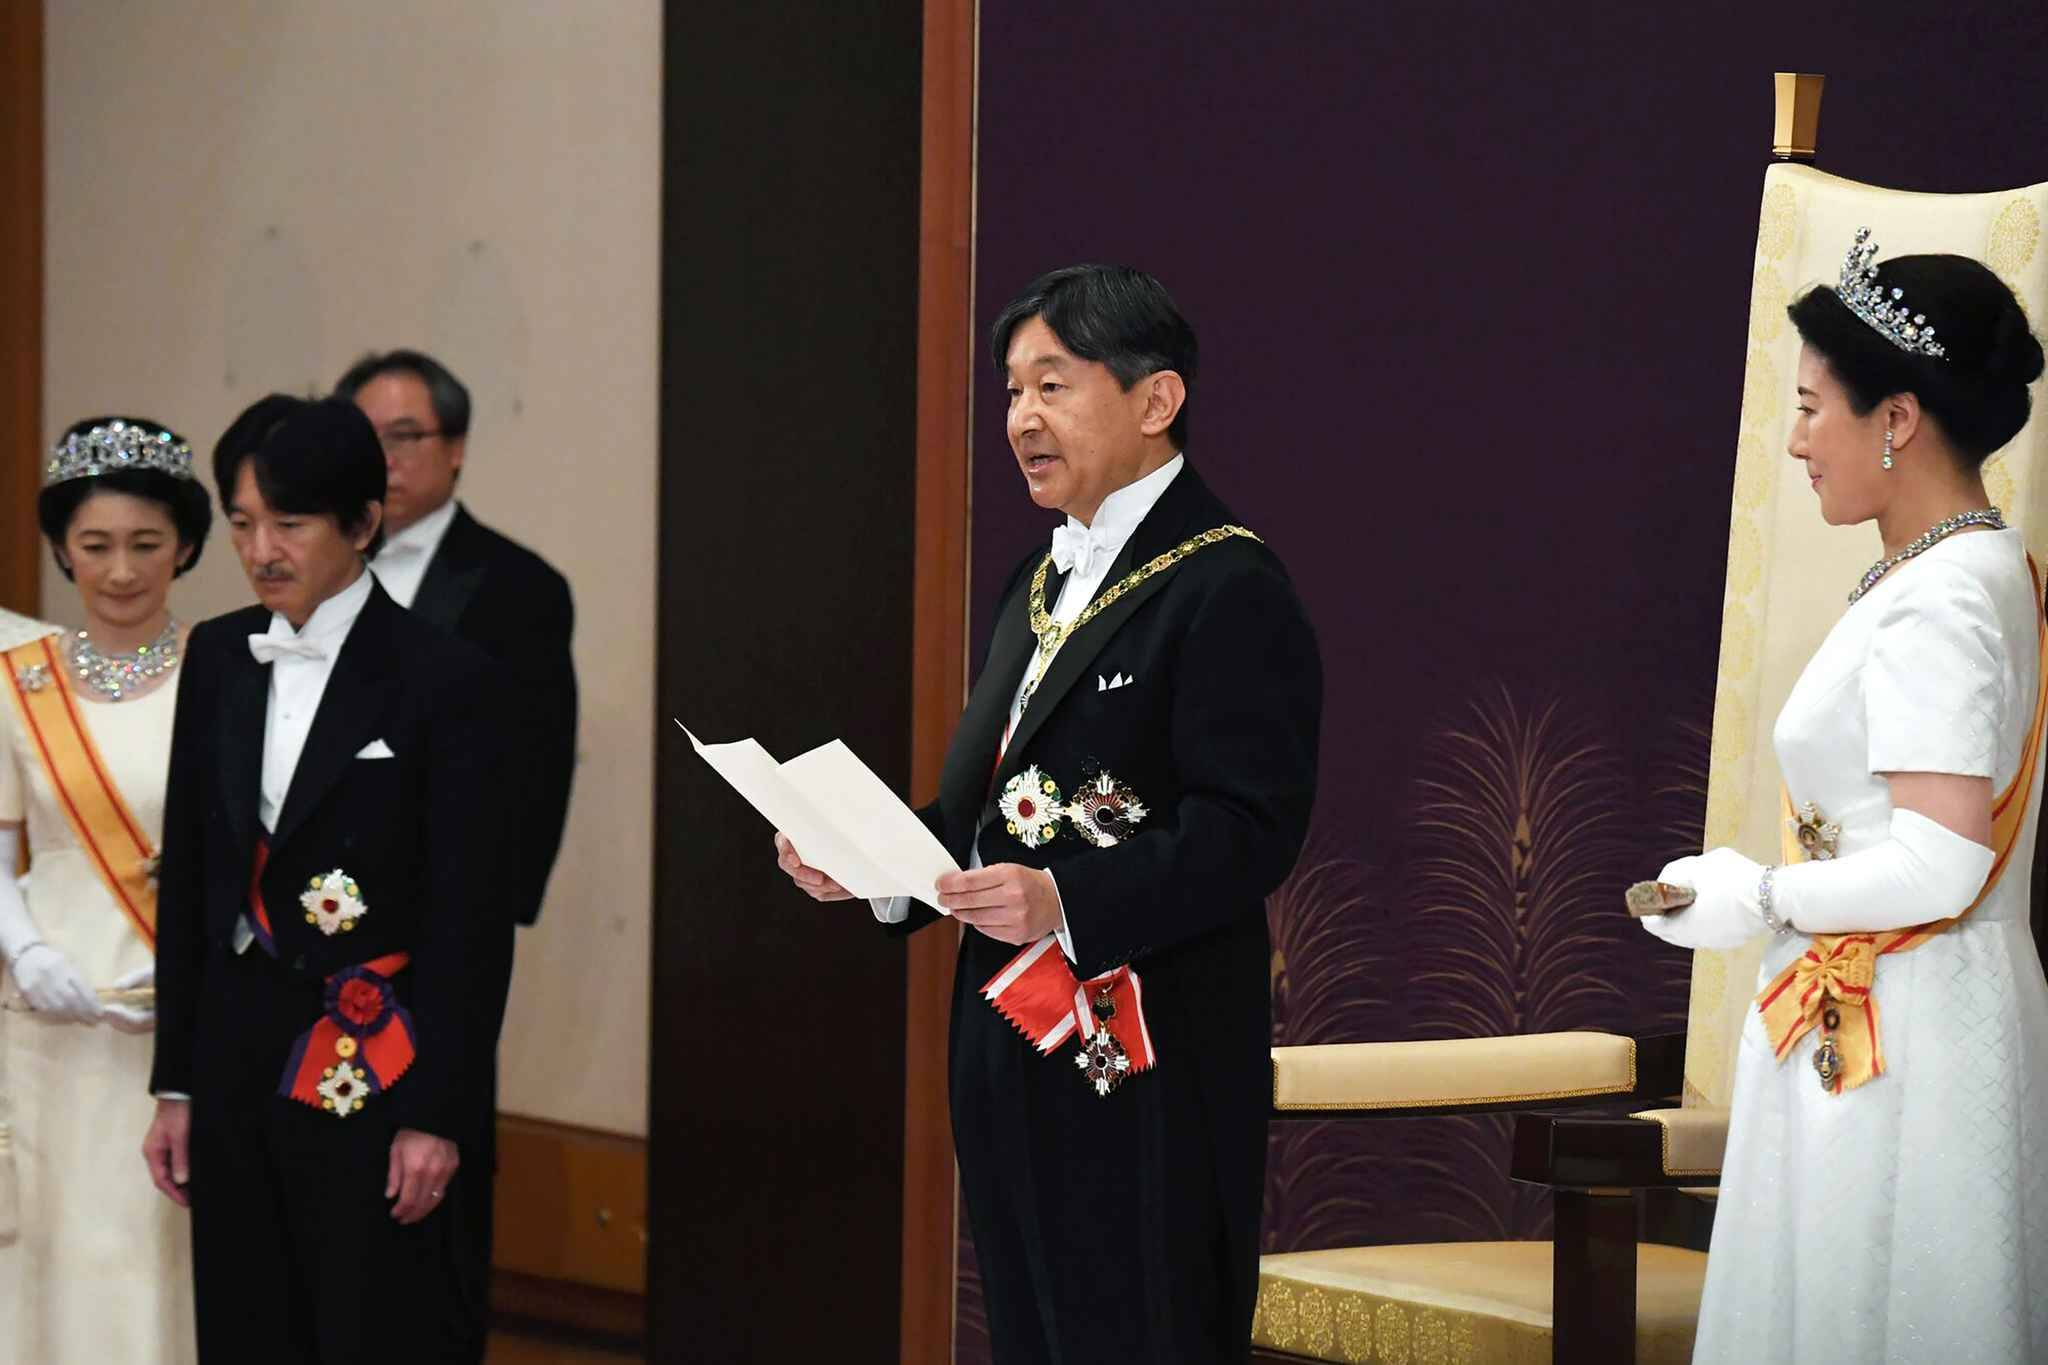 Japans new Emperor Naruhito (2nd R) delivers his speech as new Empress Masako (R), Crown Prince Akishino (2nd L) and his wife Crown Princess Kiko (L) attend a ceremony to receive the first audience after the accession to the throne at the Matsu-no-Ma state room inside the Imperial Palace in Tokyo on May 1, 2019. - Japan's new Emperor Naruhito formally ascended the Chrysanthemum Throne on May 1, a day after his father abdicated from the world's oldest monarchy and ushered in a new imperial era. (Photo by STR / Japan Pool / AFP) / Japan OUT / NO SALES - No Archives